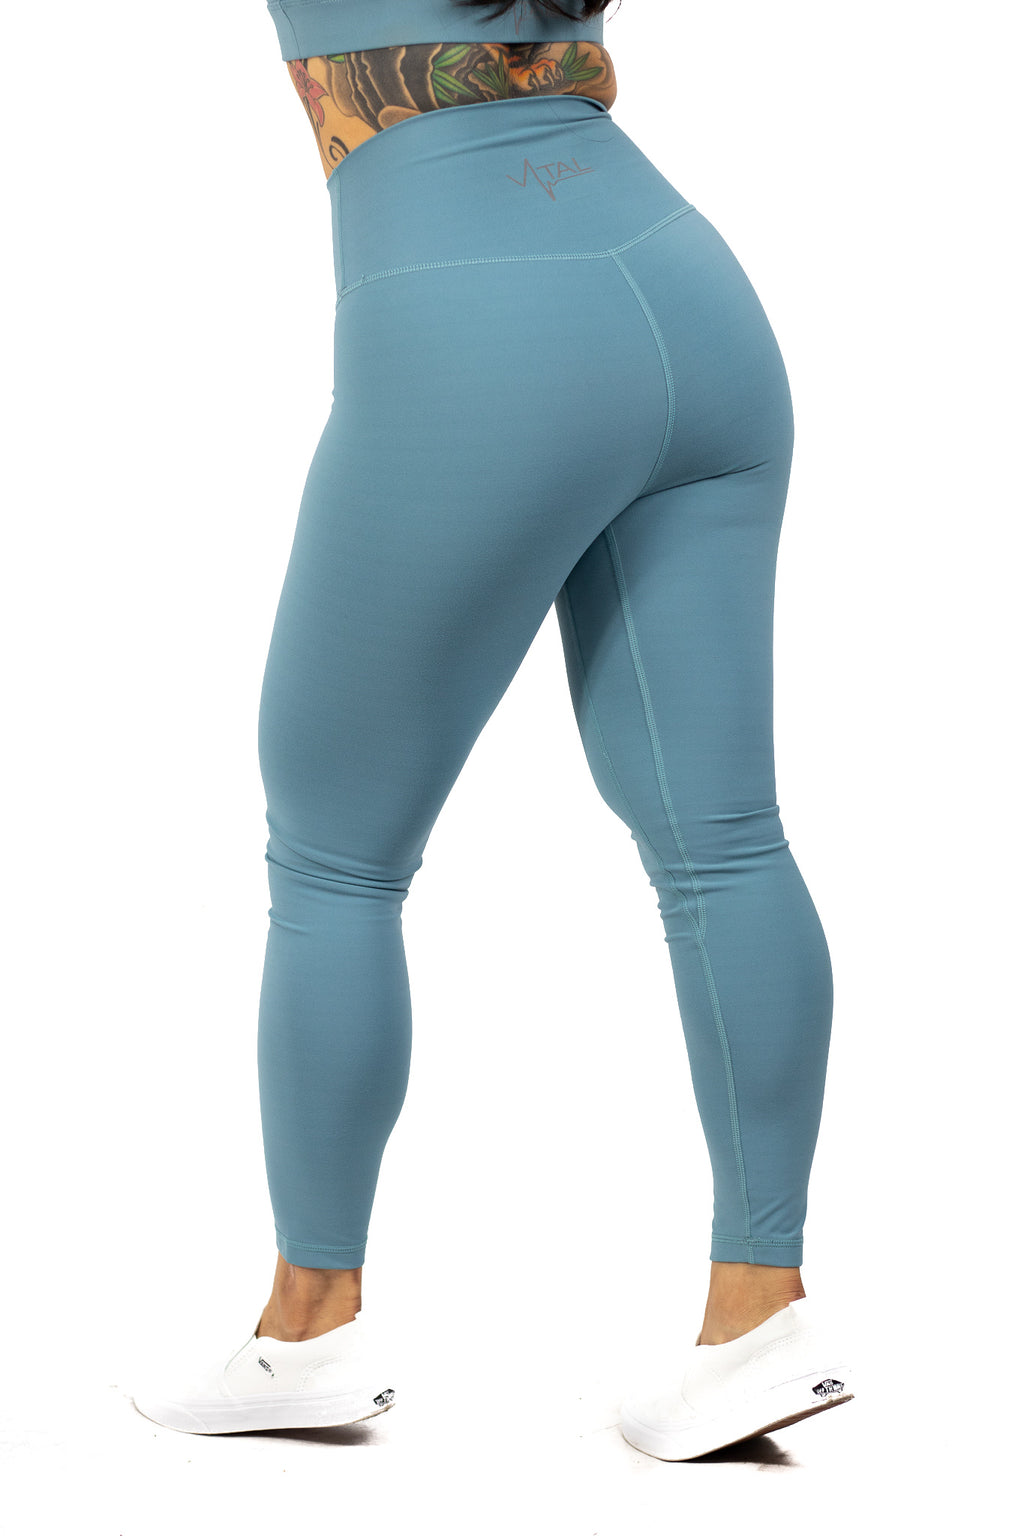 Plush V2 High Waisted Gym Workout Leggings Women